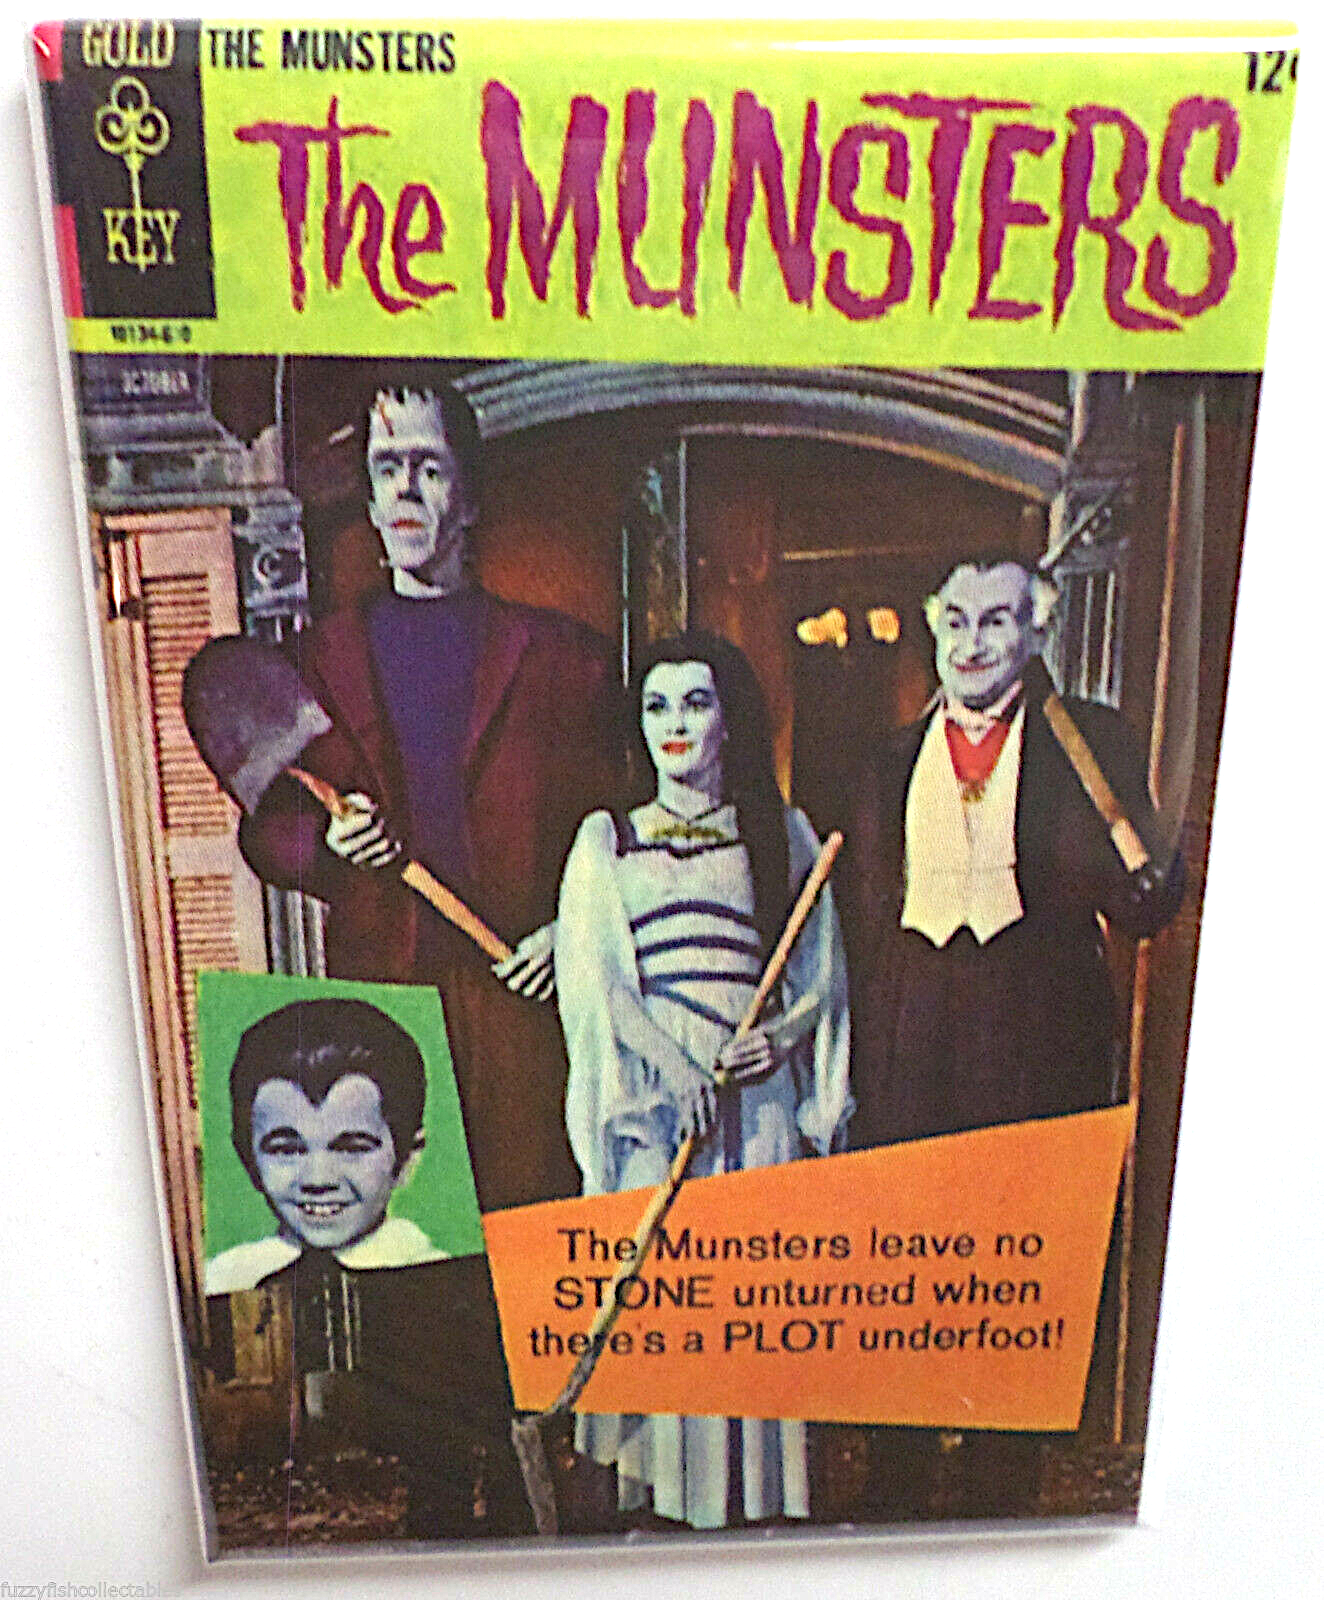 Munsters magnet 2x3